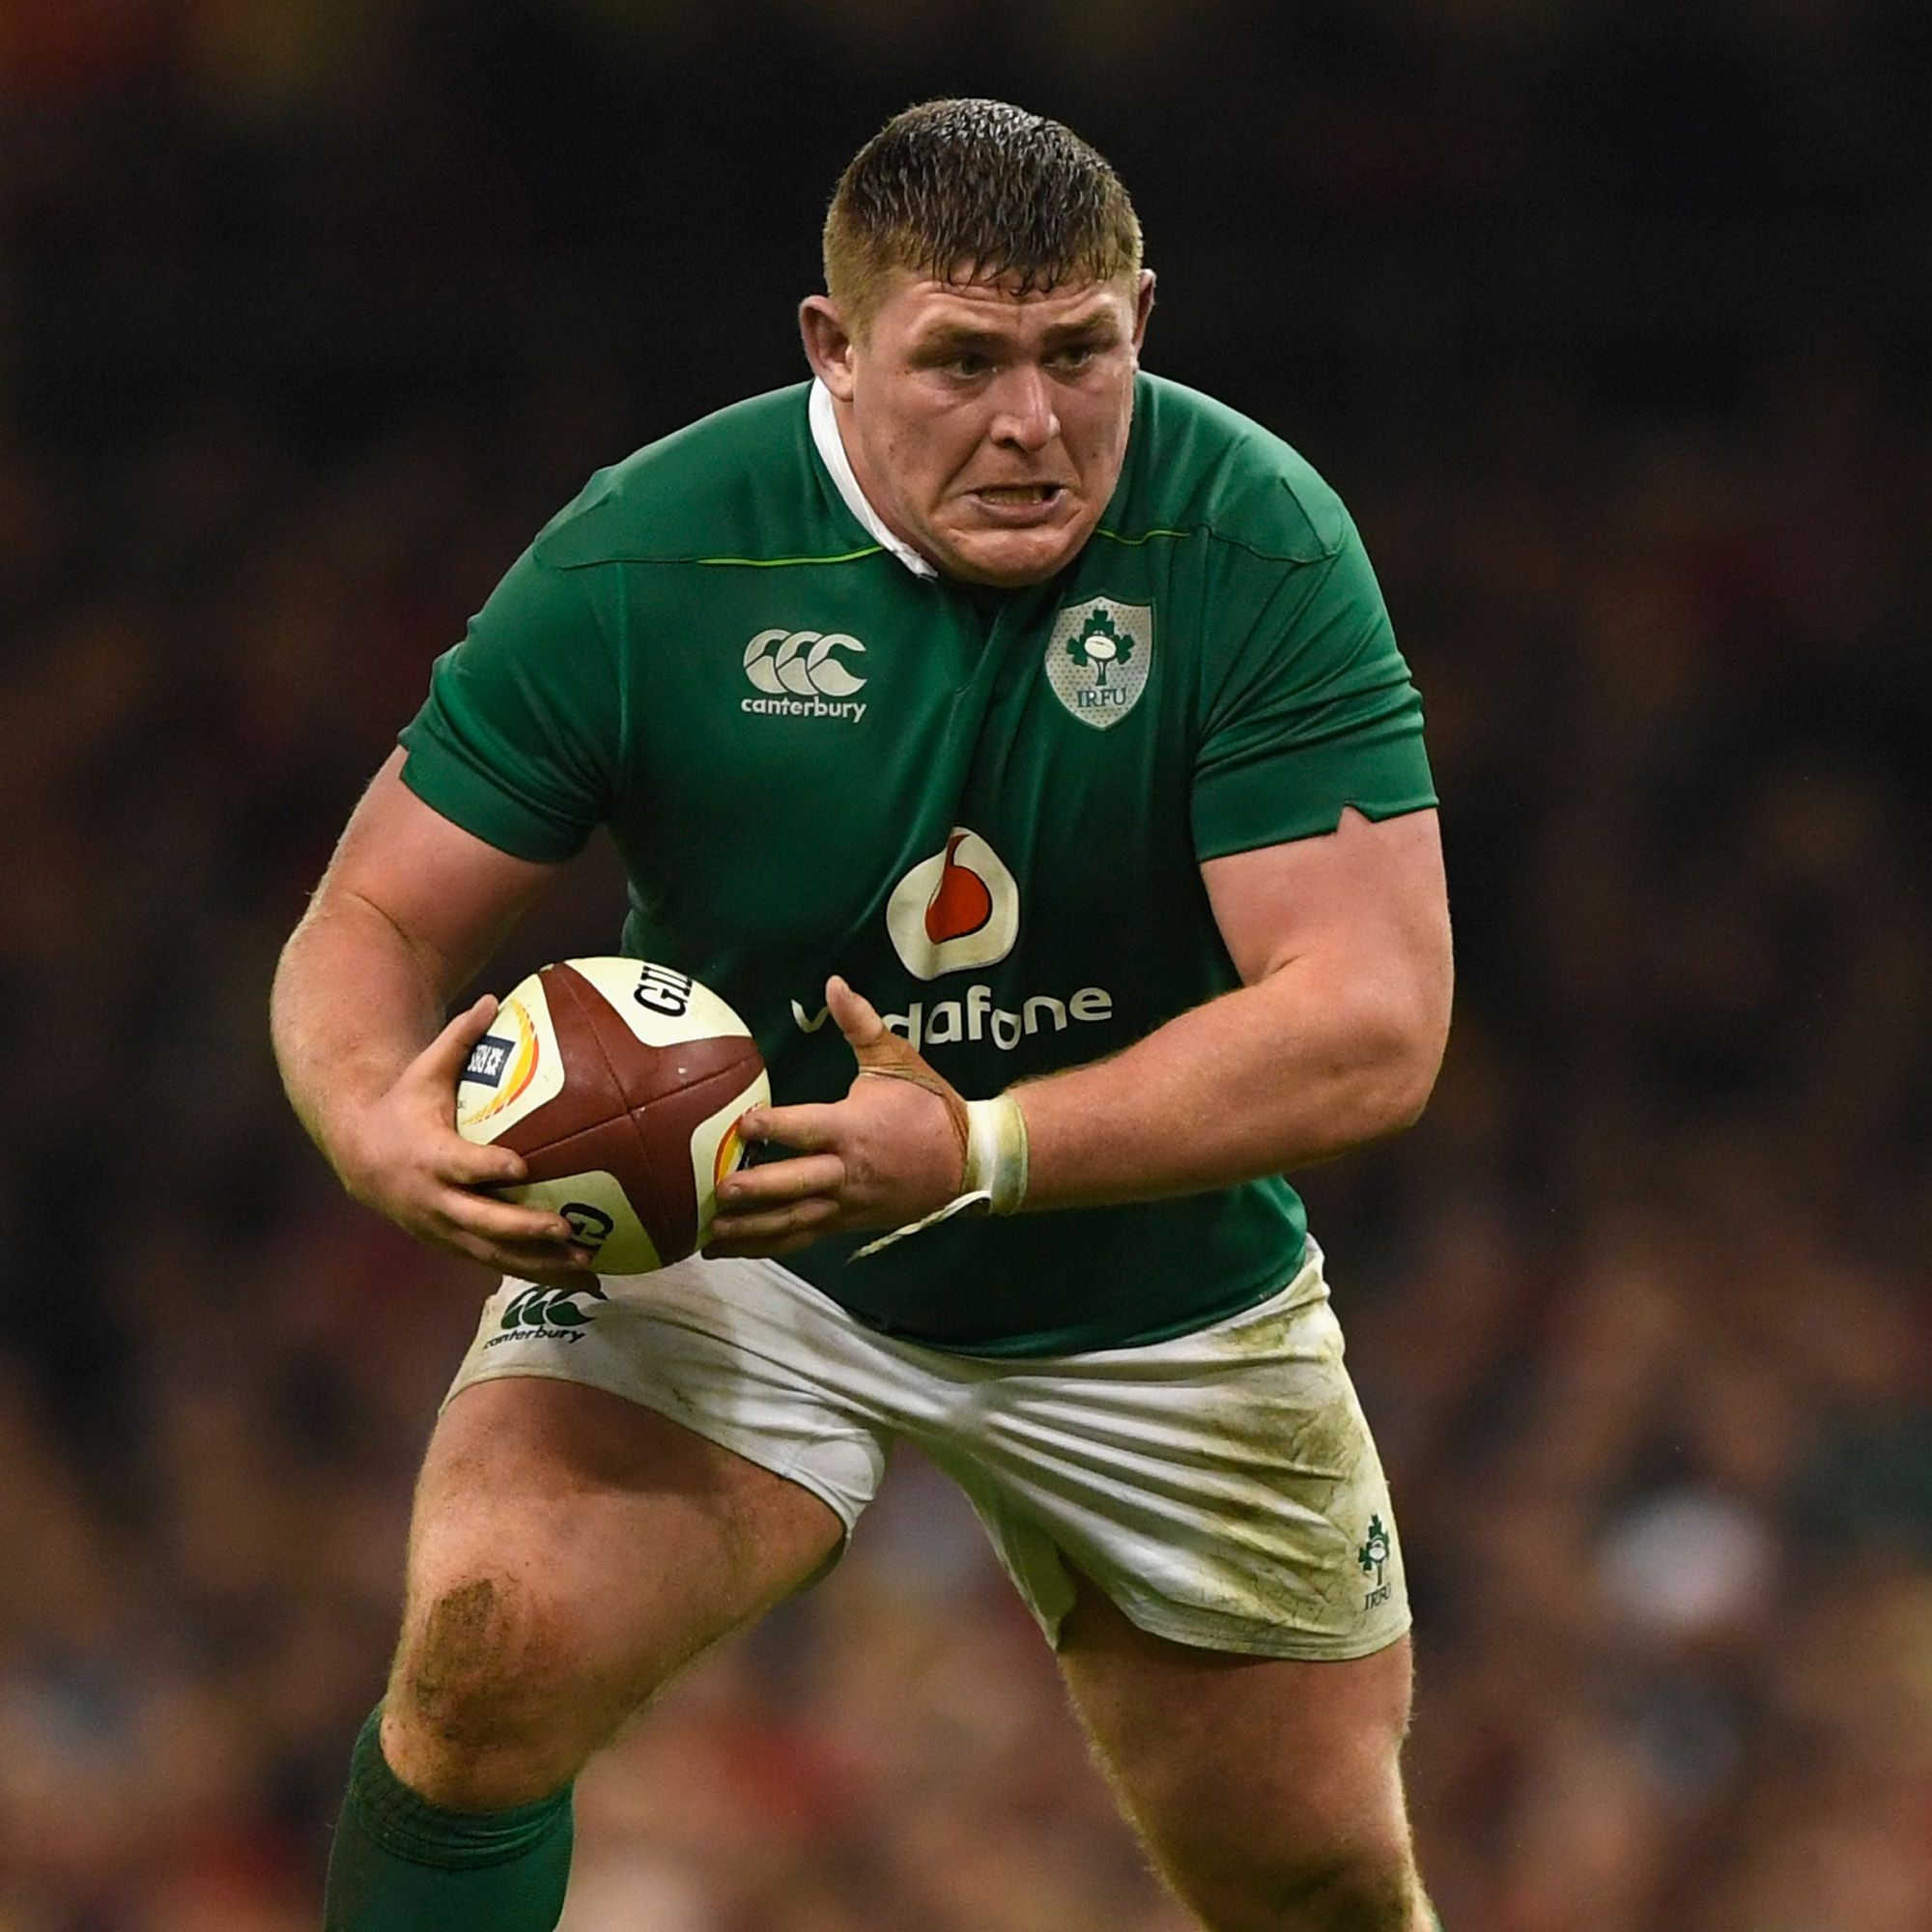 Tadhg Furlong | Sports, Rugby, Hubby